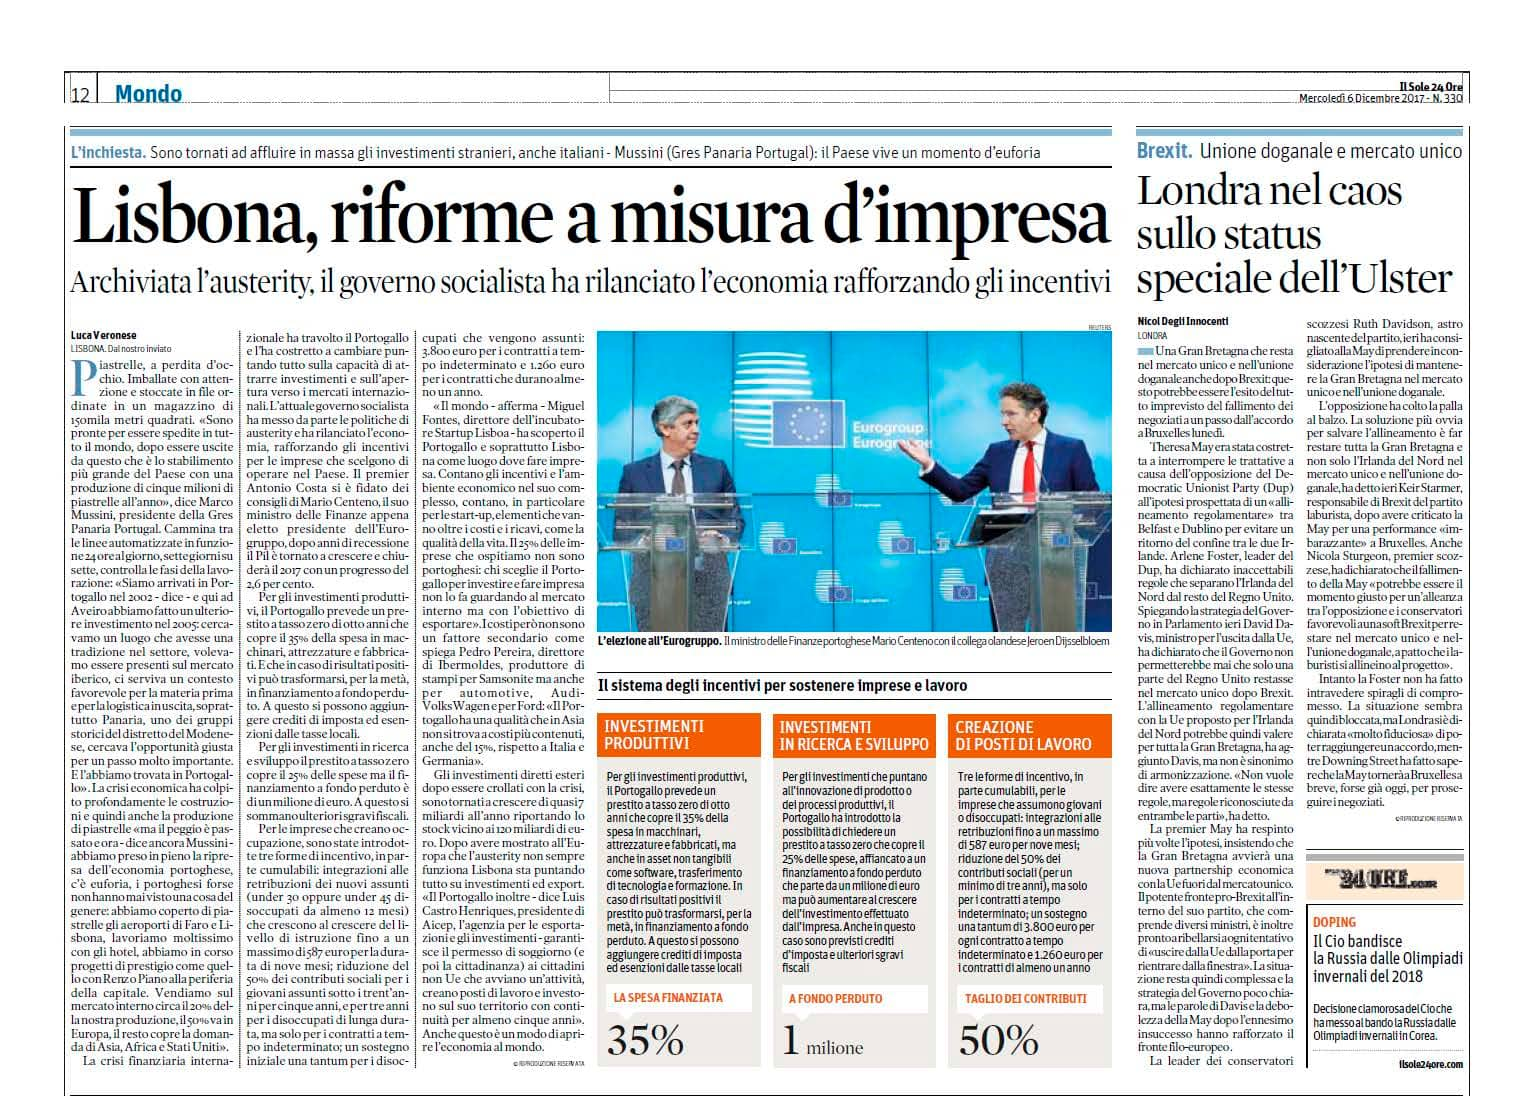 Gres Panaria Portugal is center news at italian press